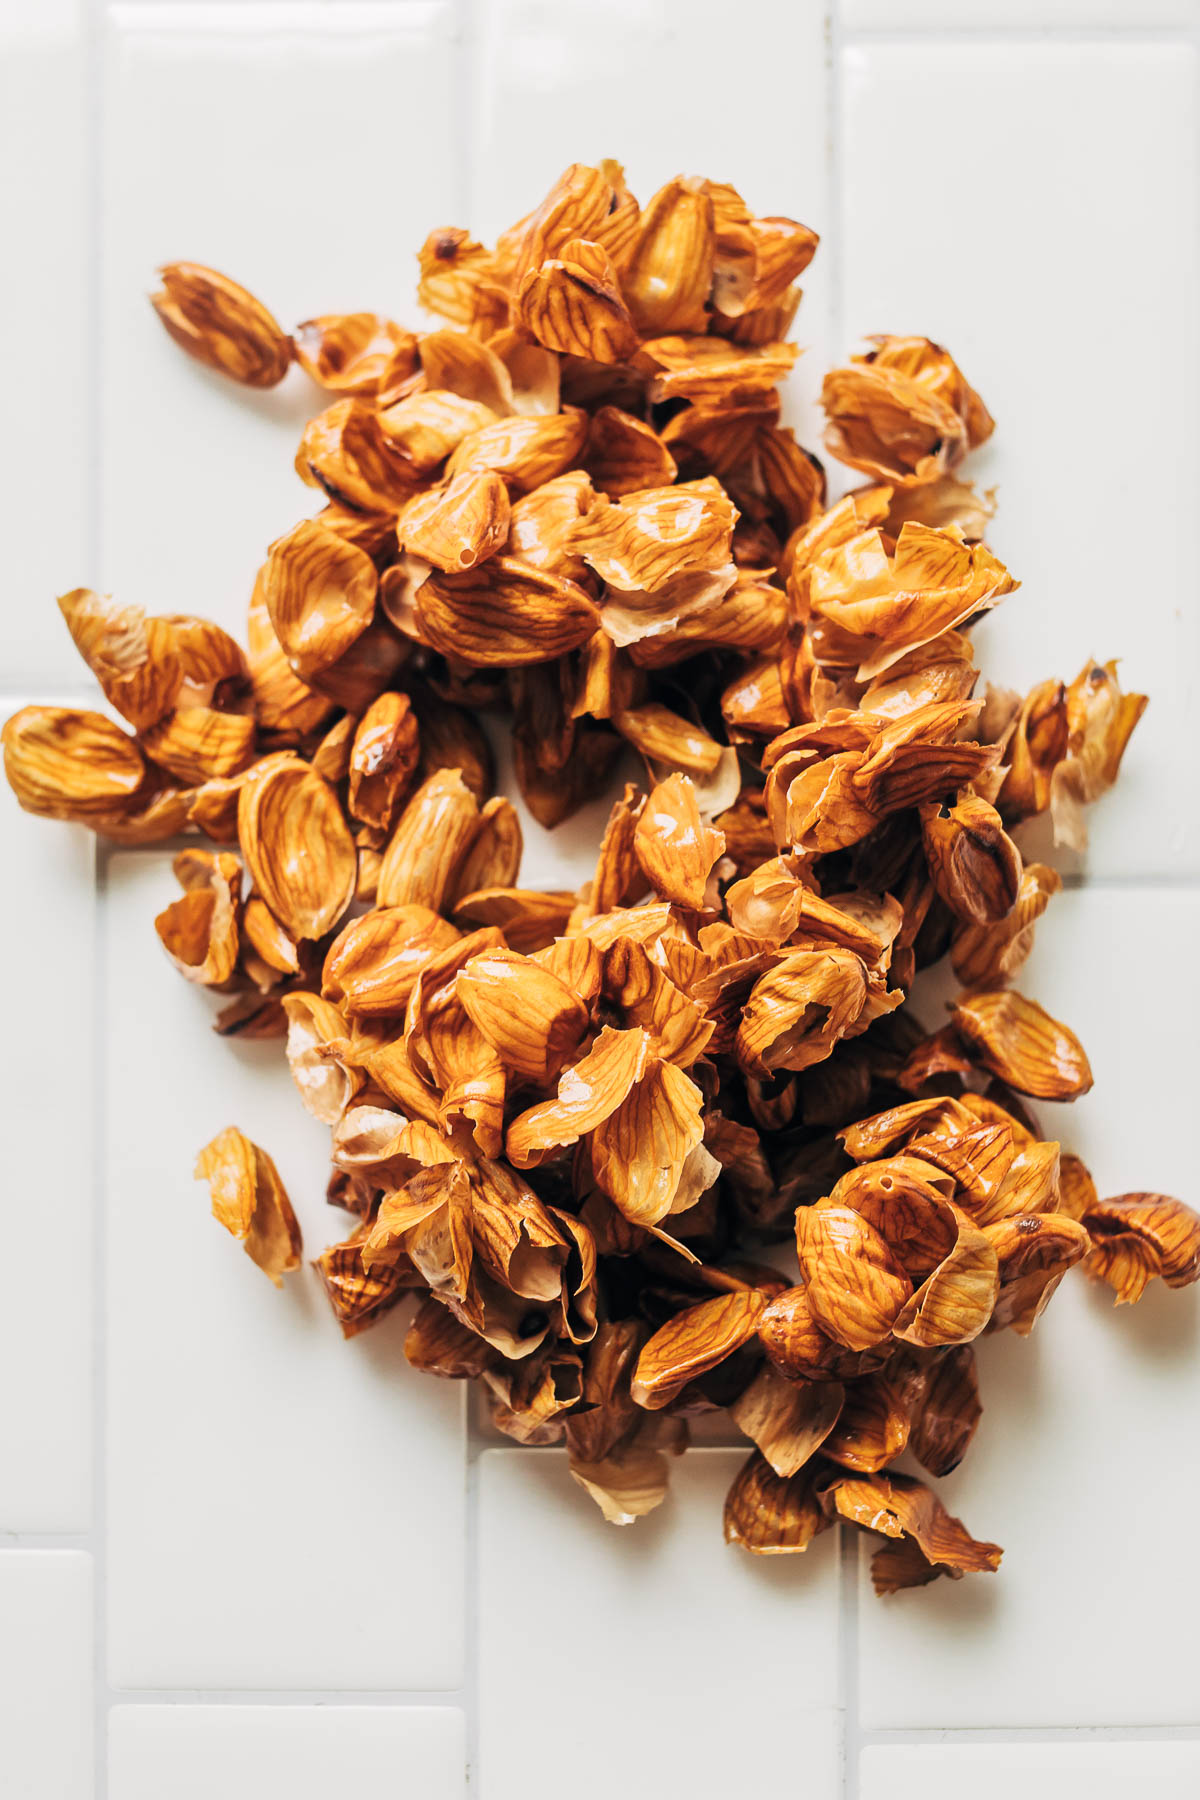 Overhead shot of a pile of almond skins.